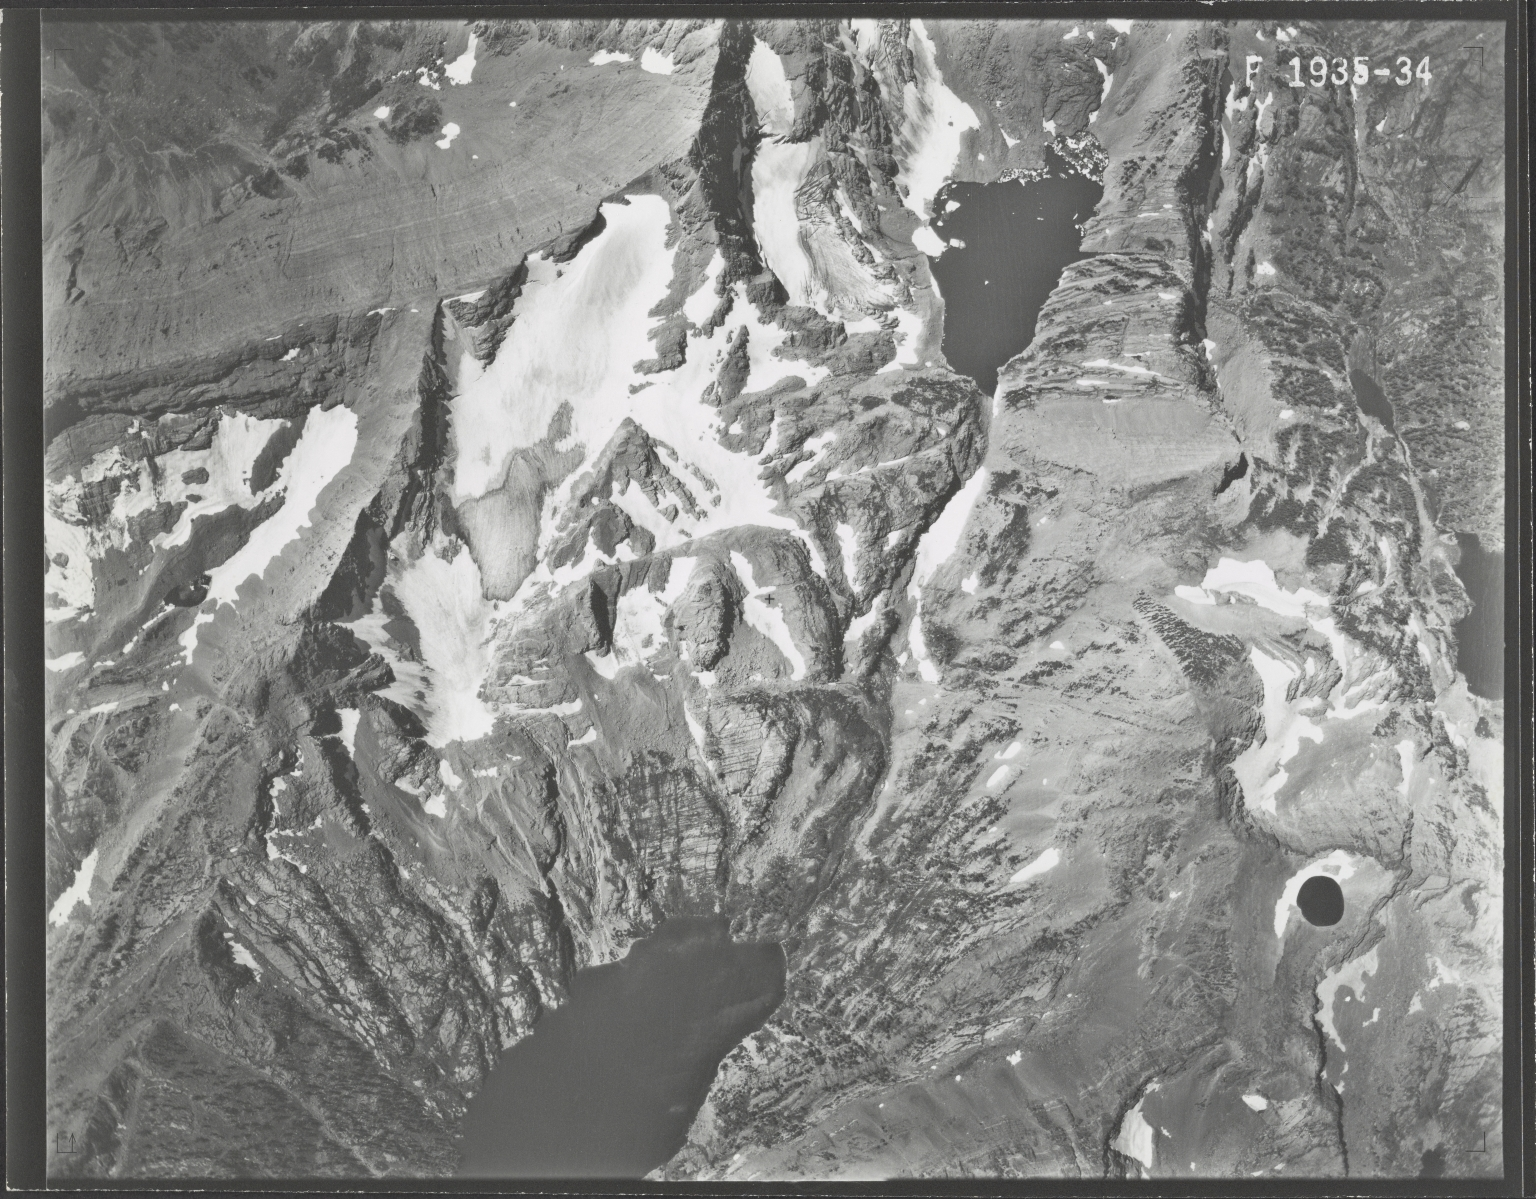 Glacier in Mission Range, aerial photograph F 1935-34, Montana